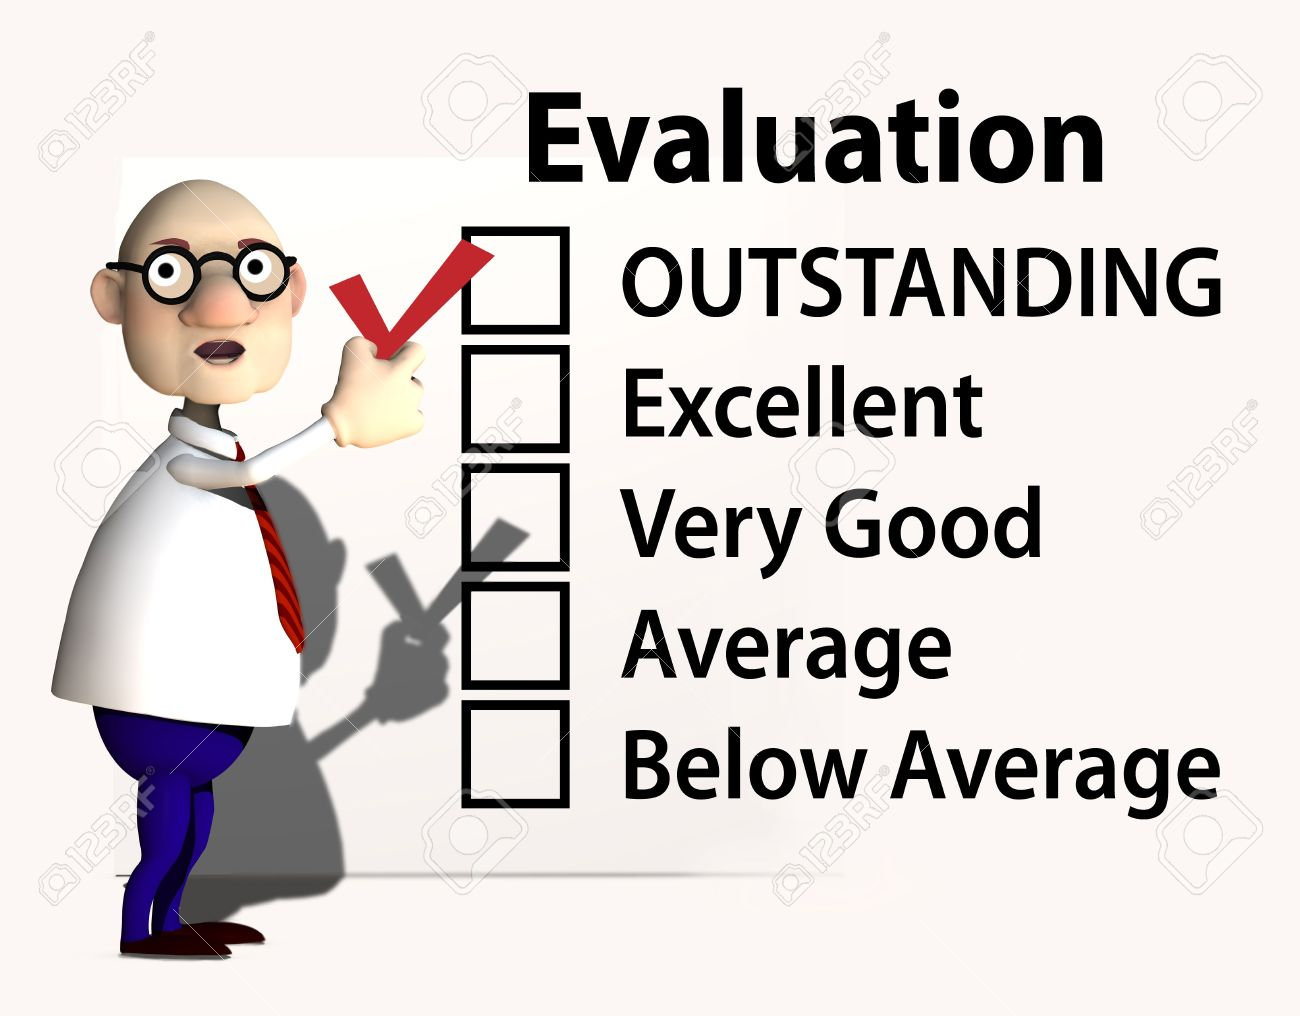 A cartoon boss or teacher puts a red check mark on a report card or evaluation for job performance. Stock Photo - 6323866